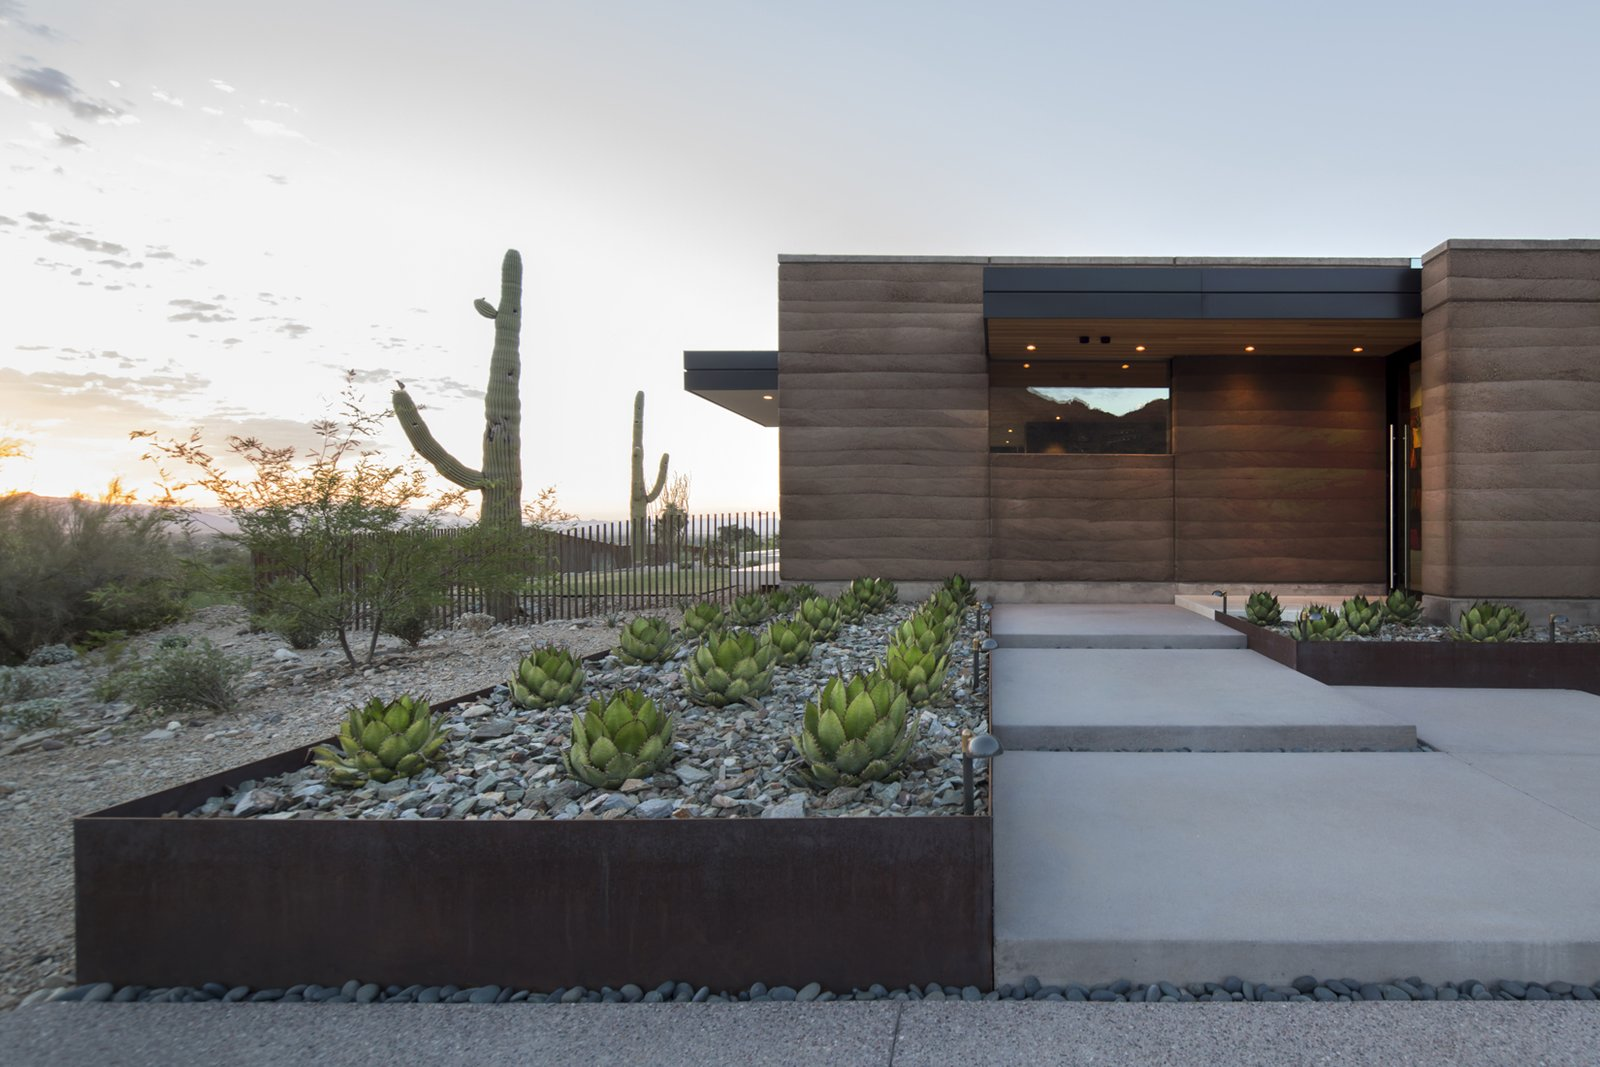 Tagged: Front Yard, Desert, Hardscapes, Trees, Raised Planters, Gardens, Walkways, Vertical, Metal, Landscape, Exterior, Wood, and House.  Best Exterior Gardens Metal Photos from Rammed Earth Modern